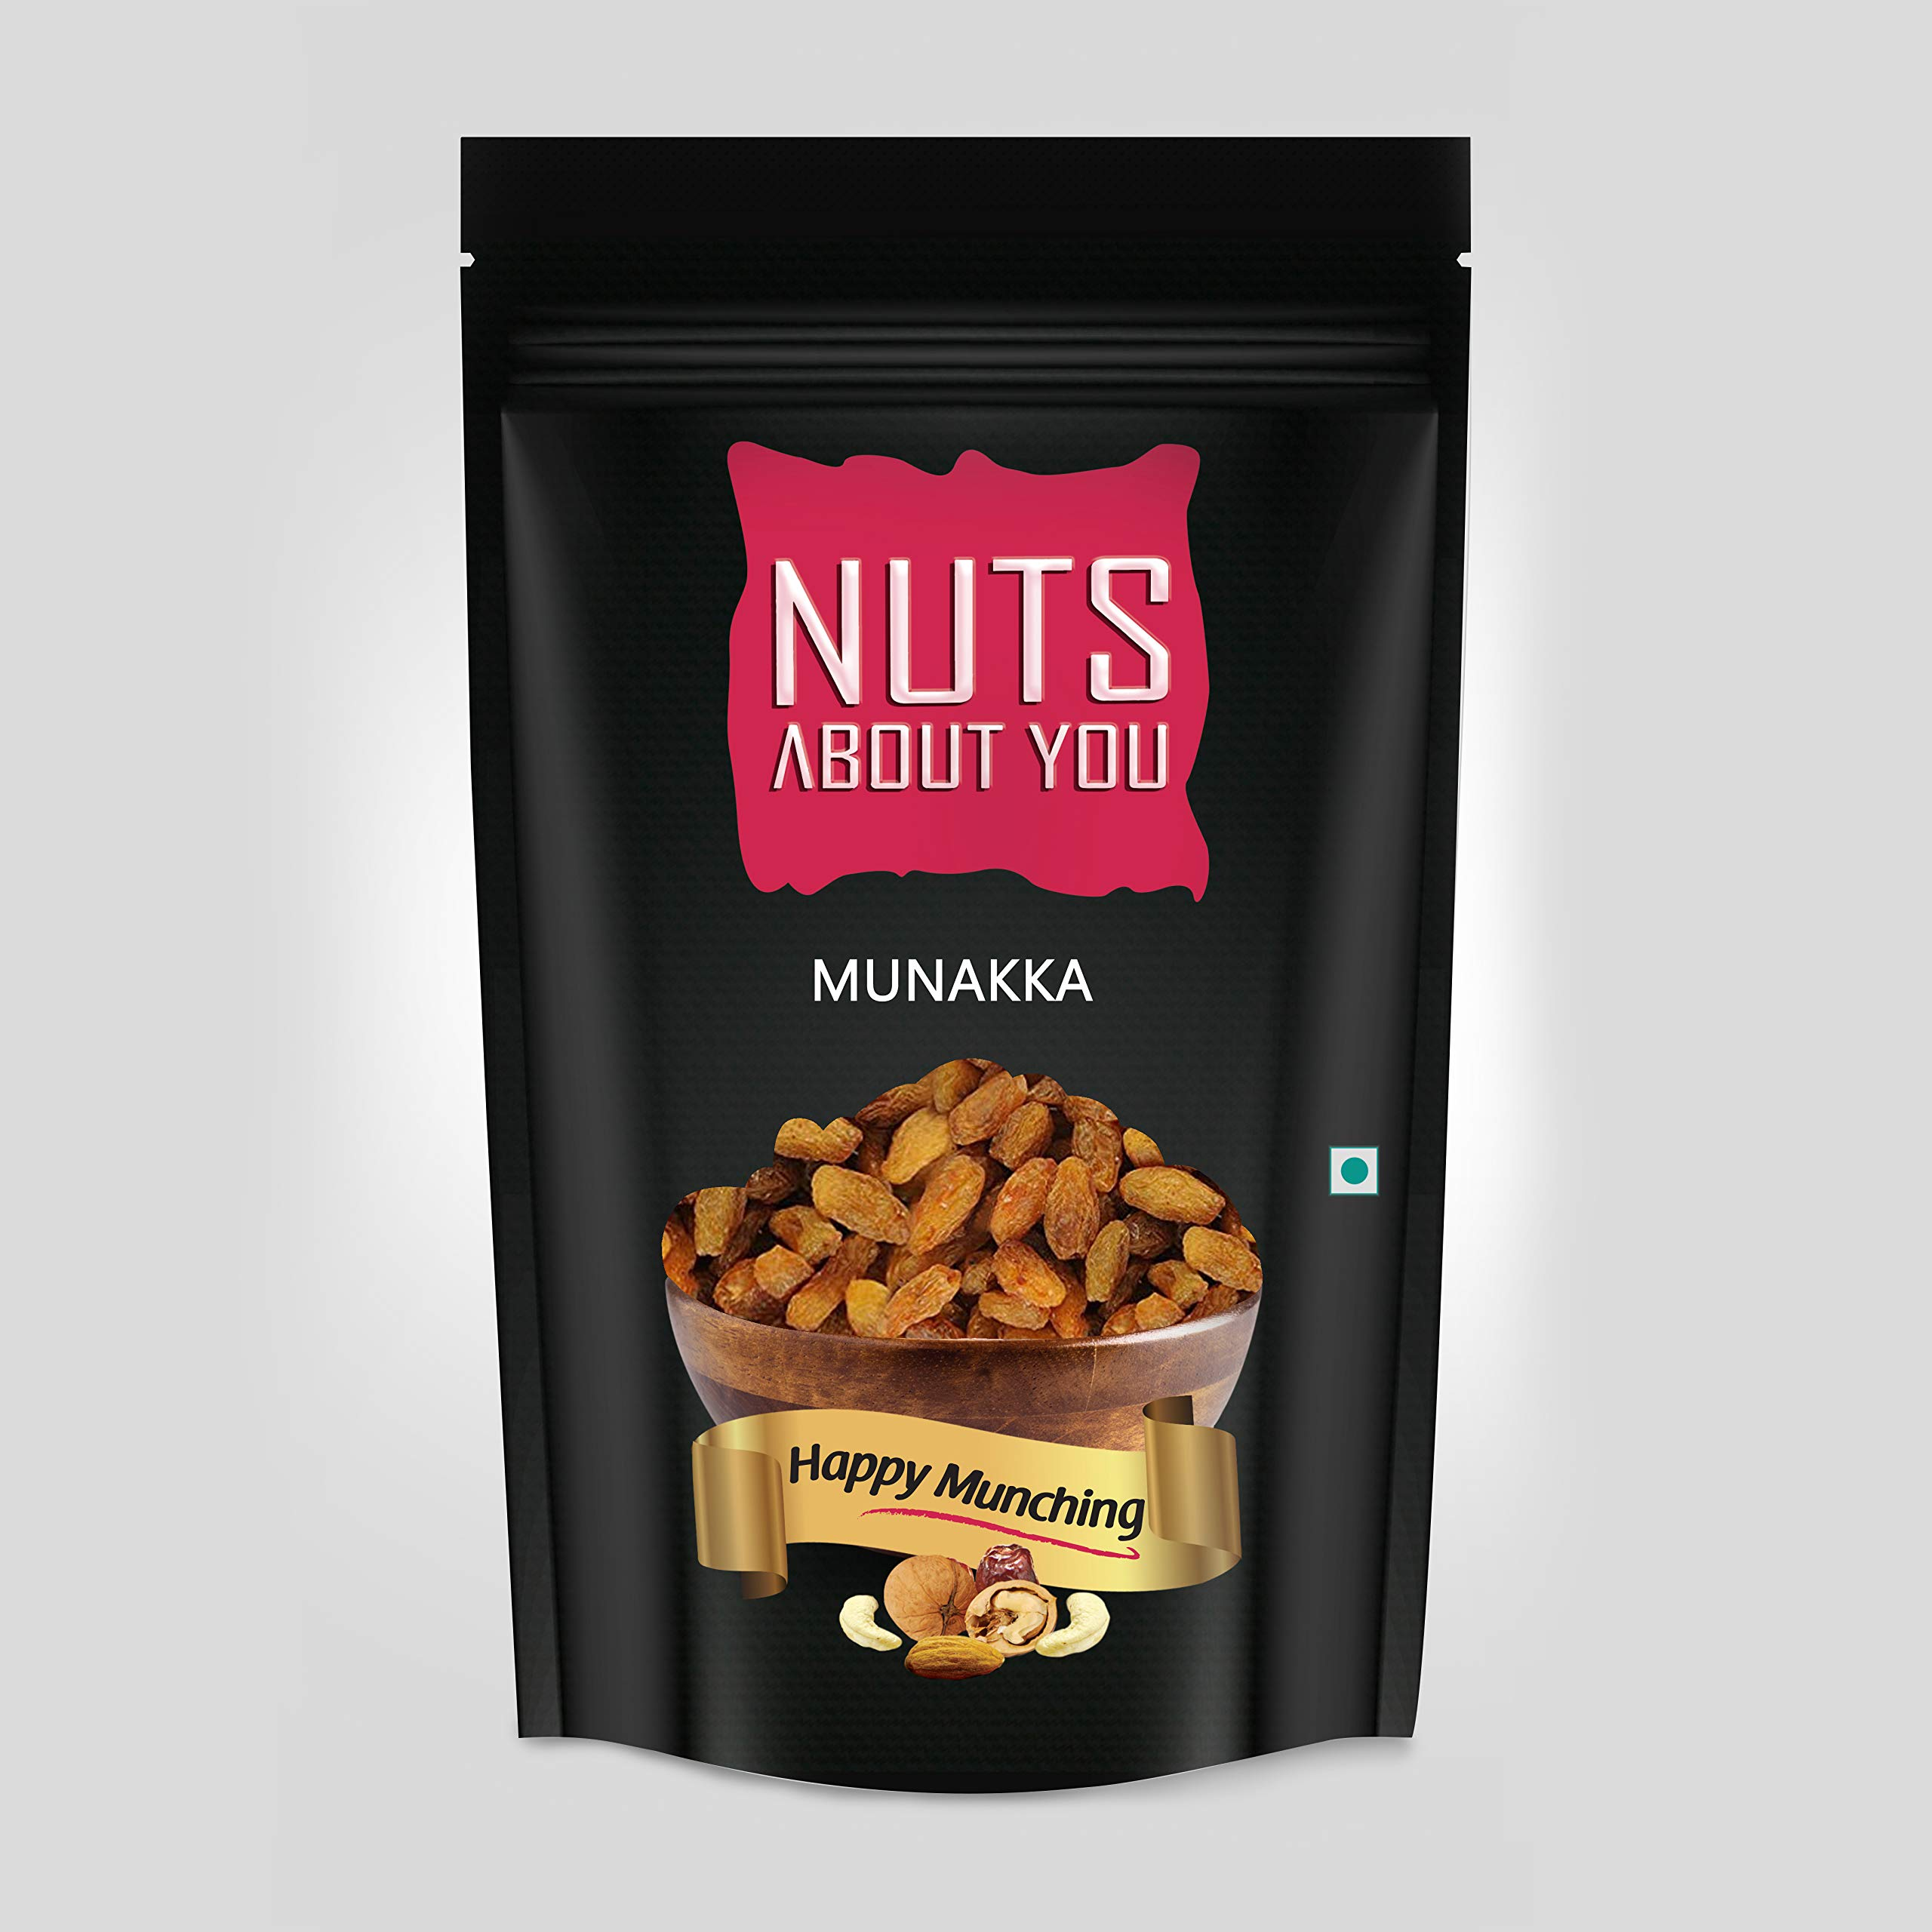 NUTS ABOUT YOU MUNAKKA / ABJOSH Pouch 250 g